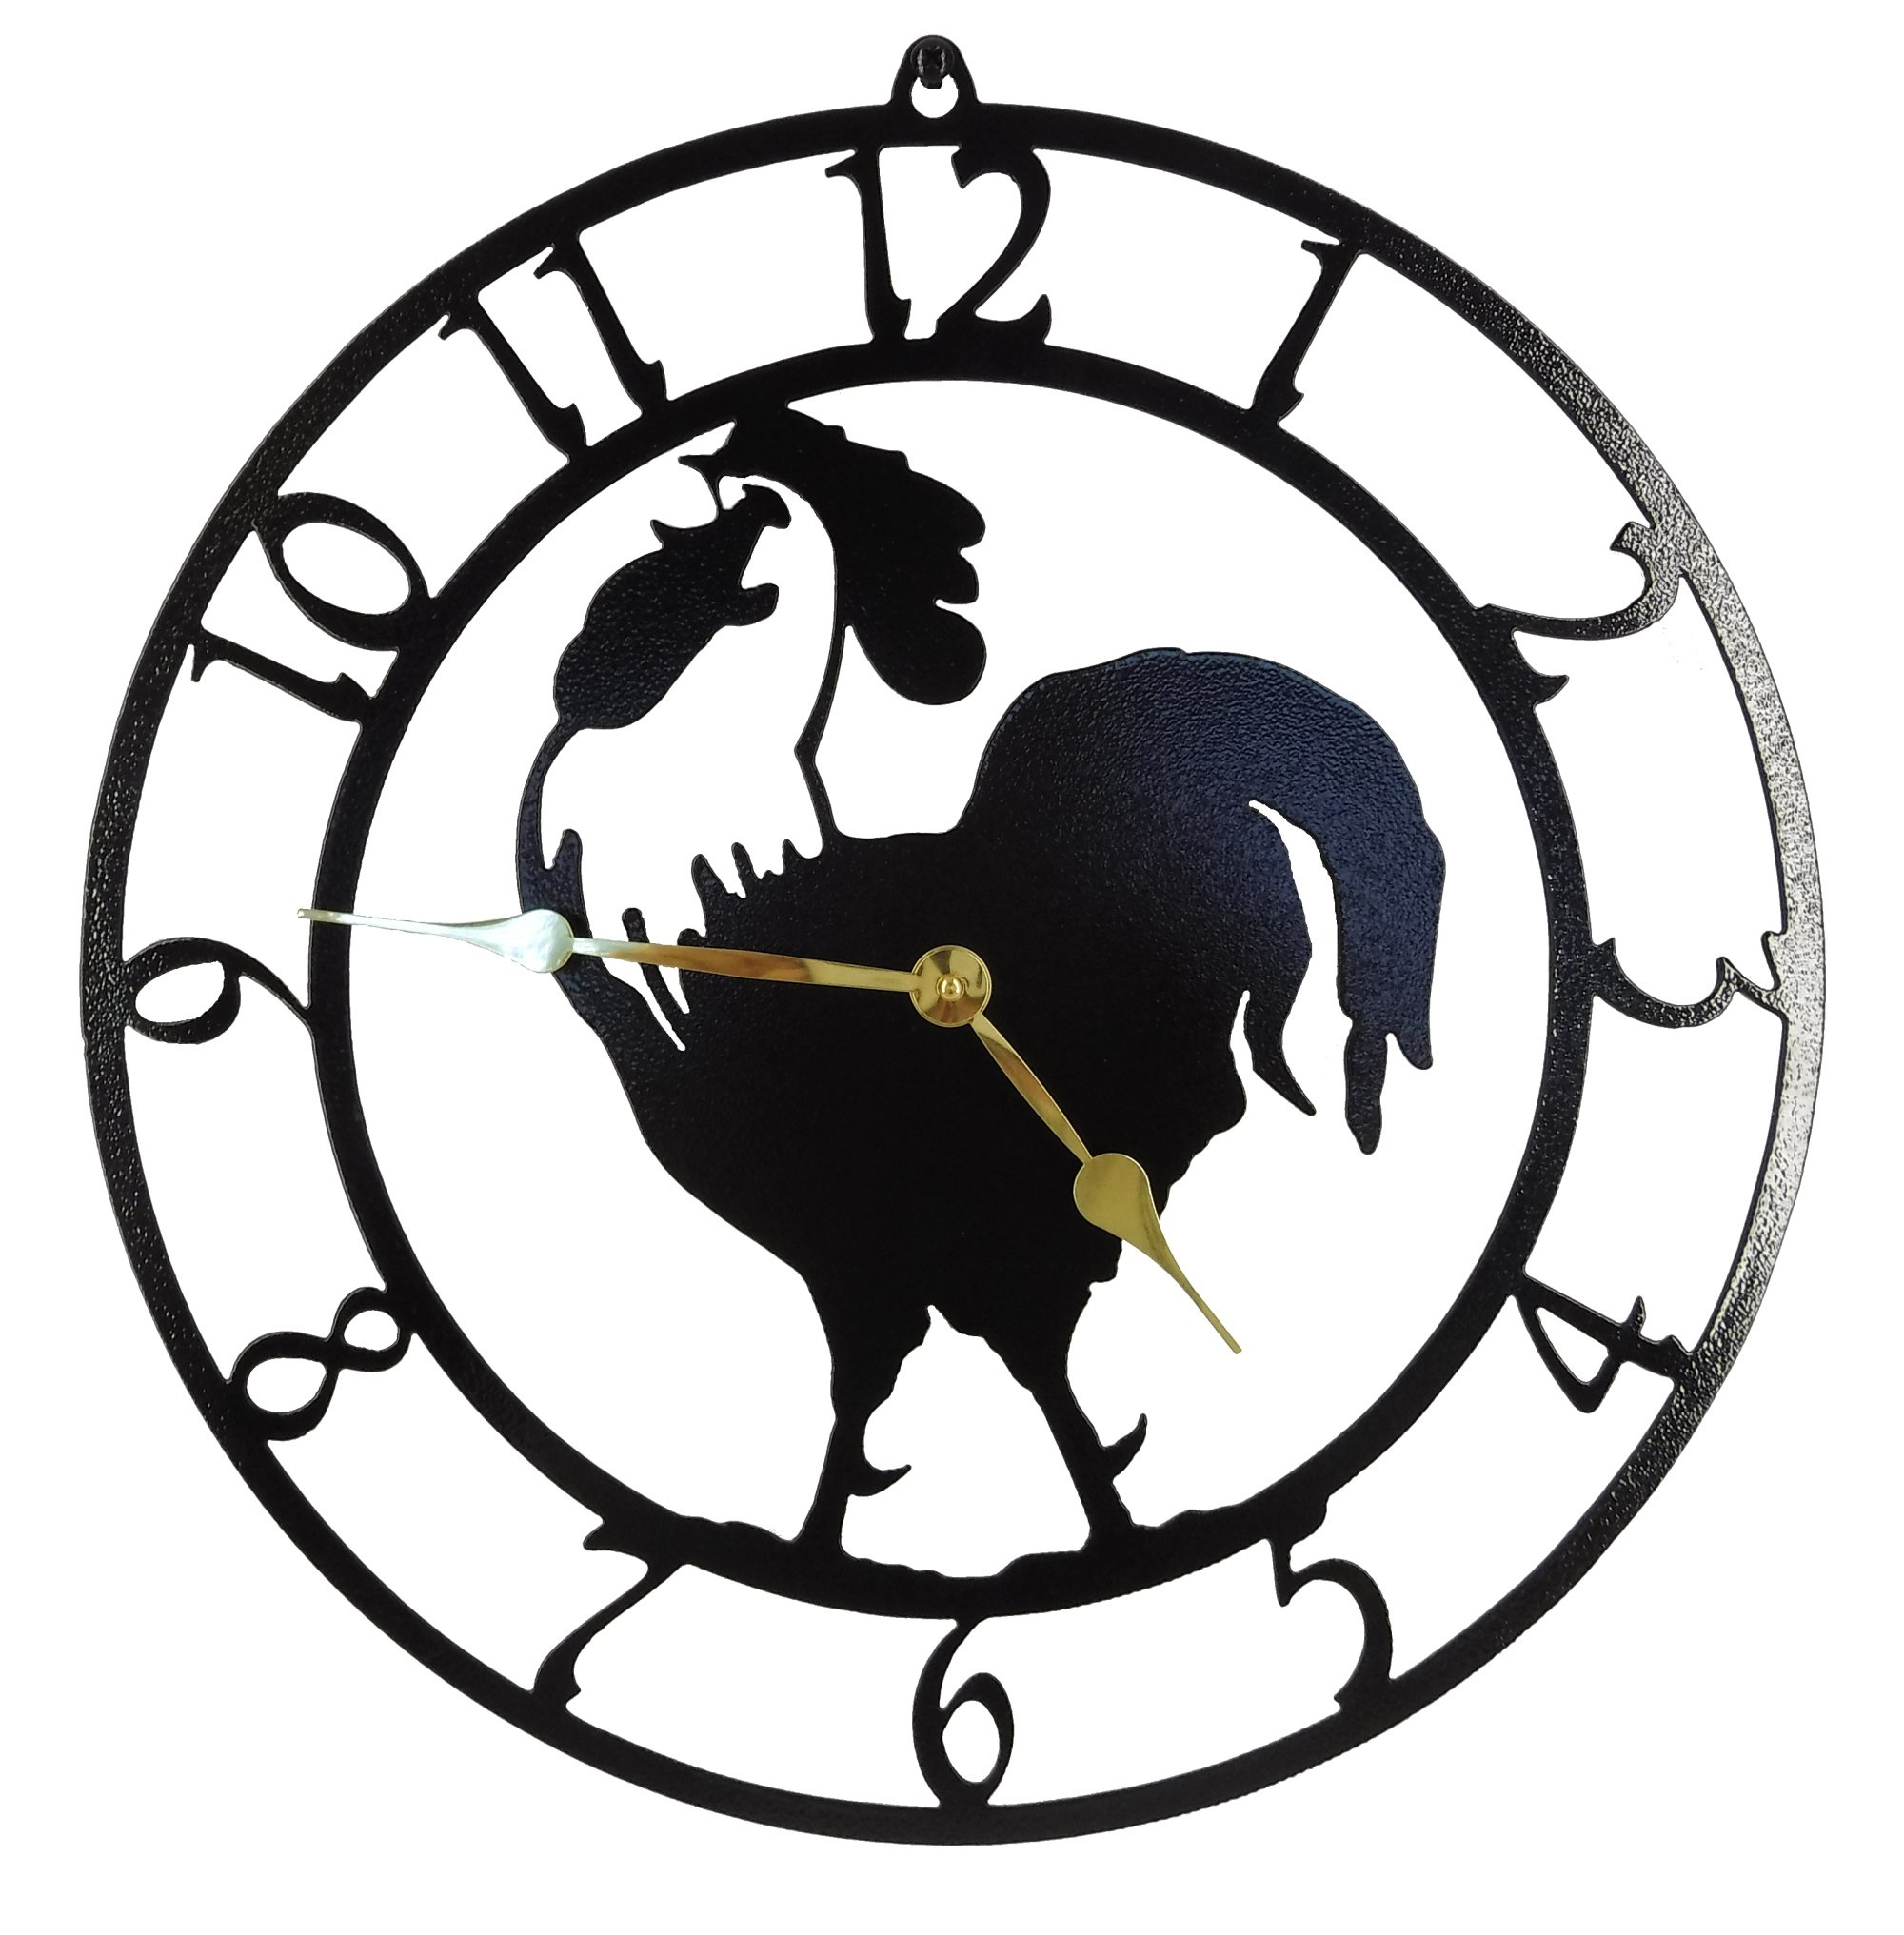 Rooster Wall Clock. Gloss Black with Brass Hands. Quartz Movement. Handmade in America.